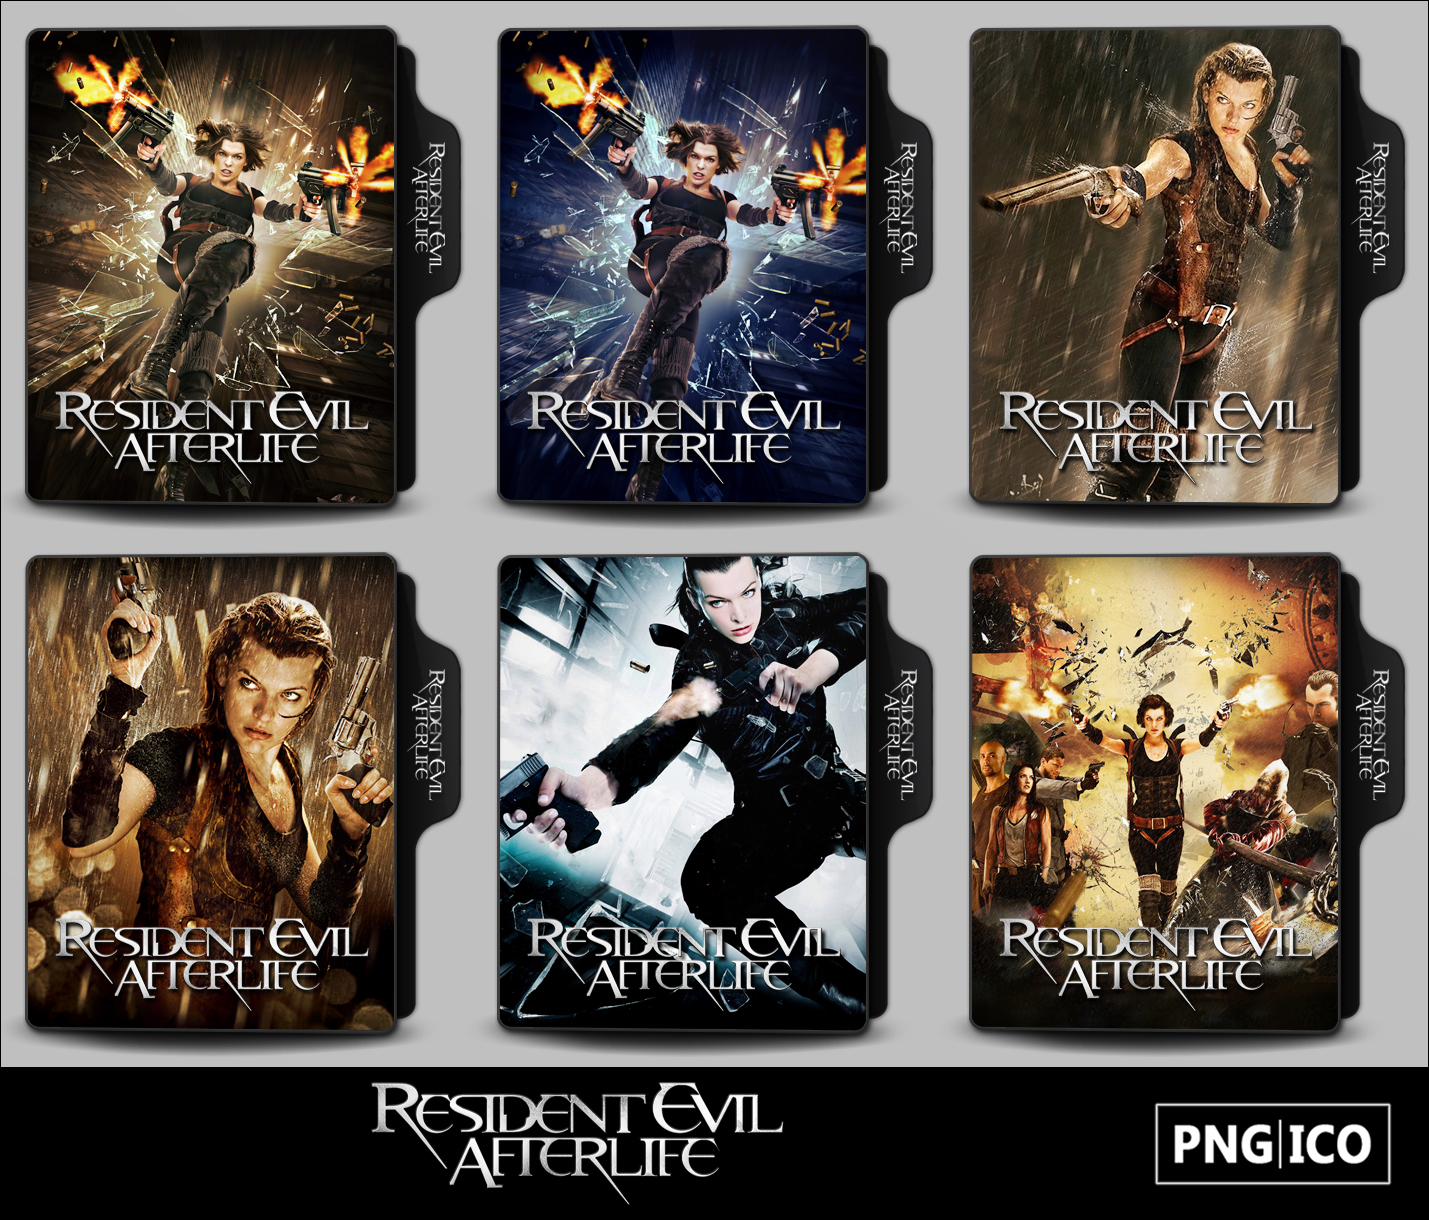 Resident Evil Afterlife 2010 Folder Icons By Onlystylematters On Deviantart